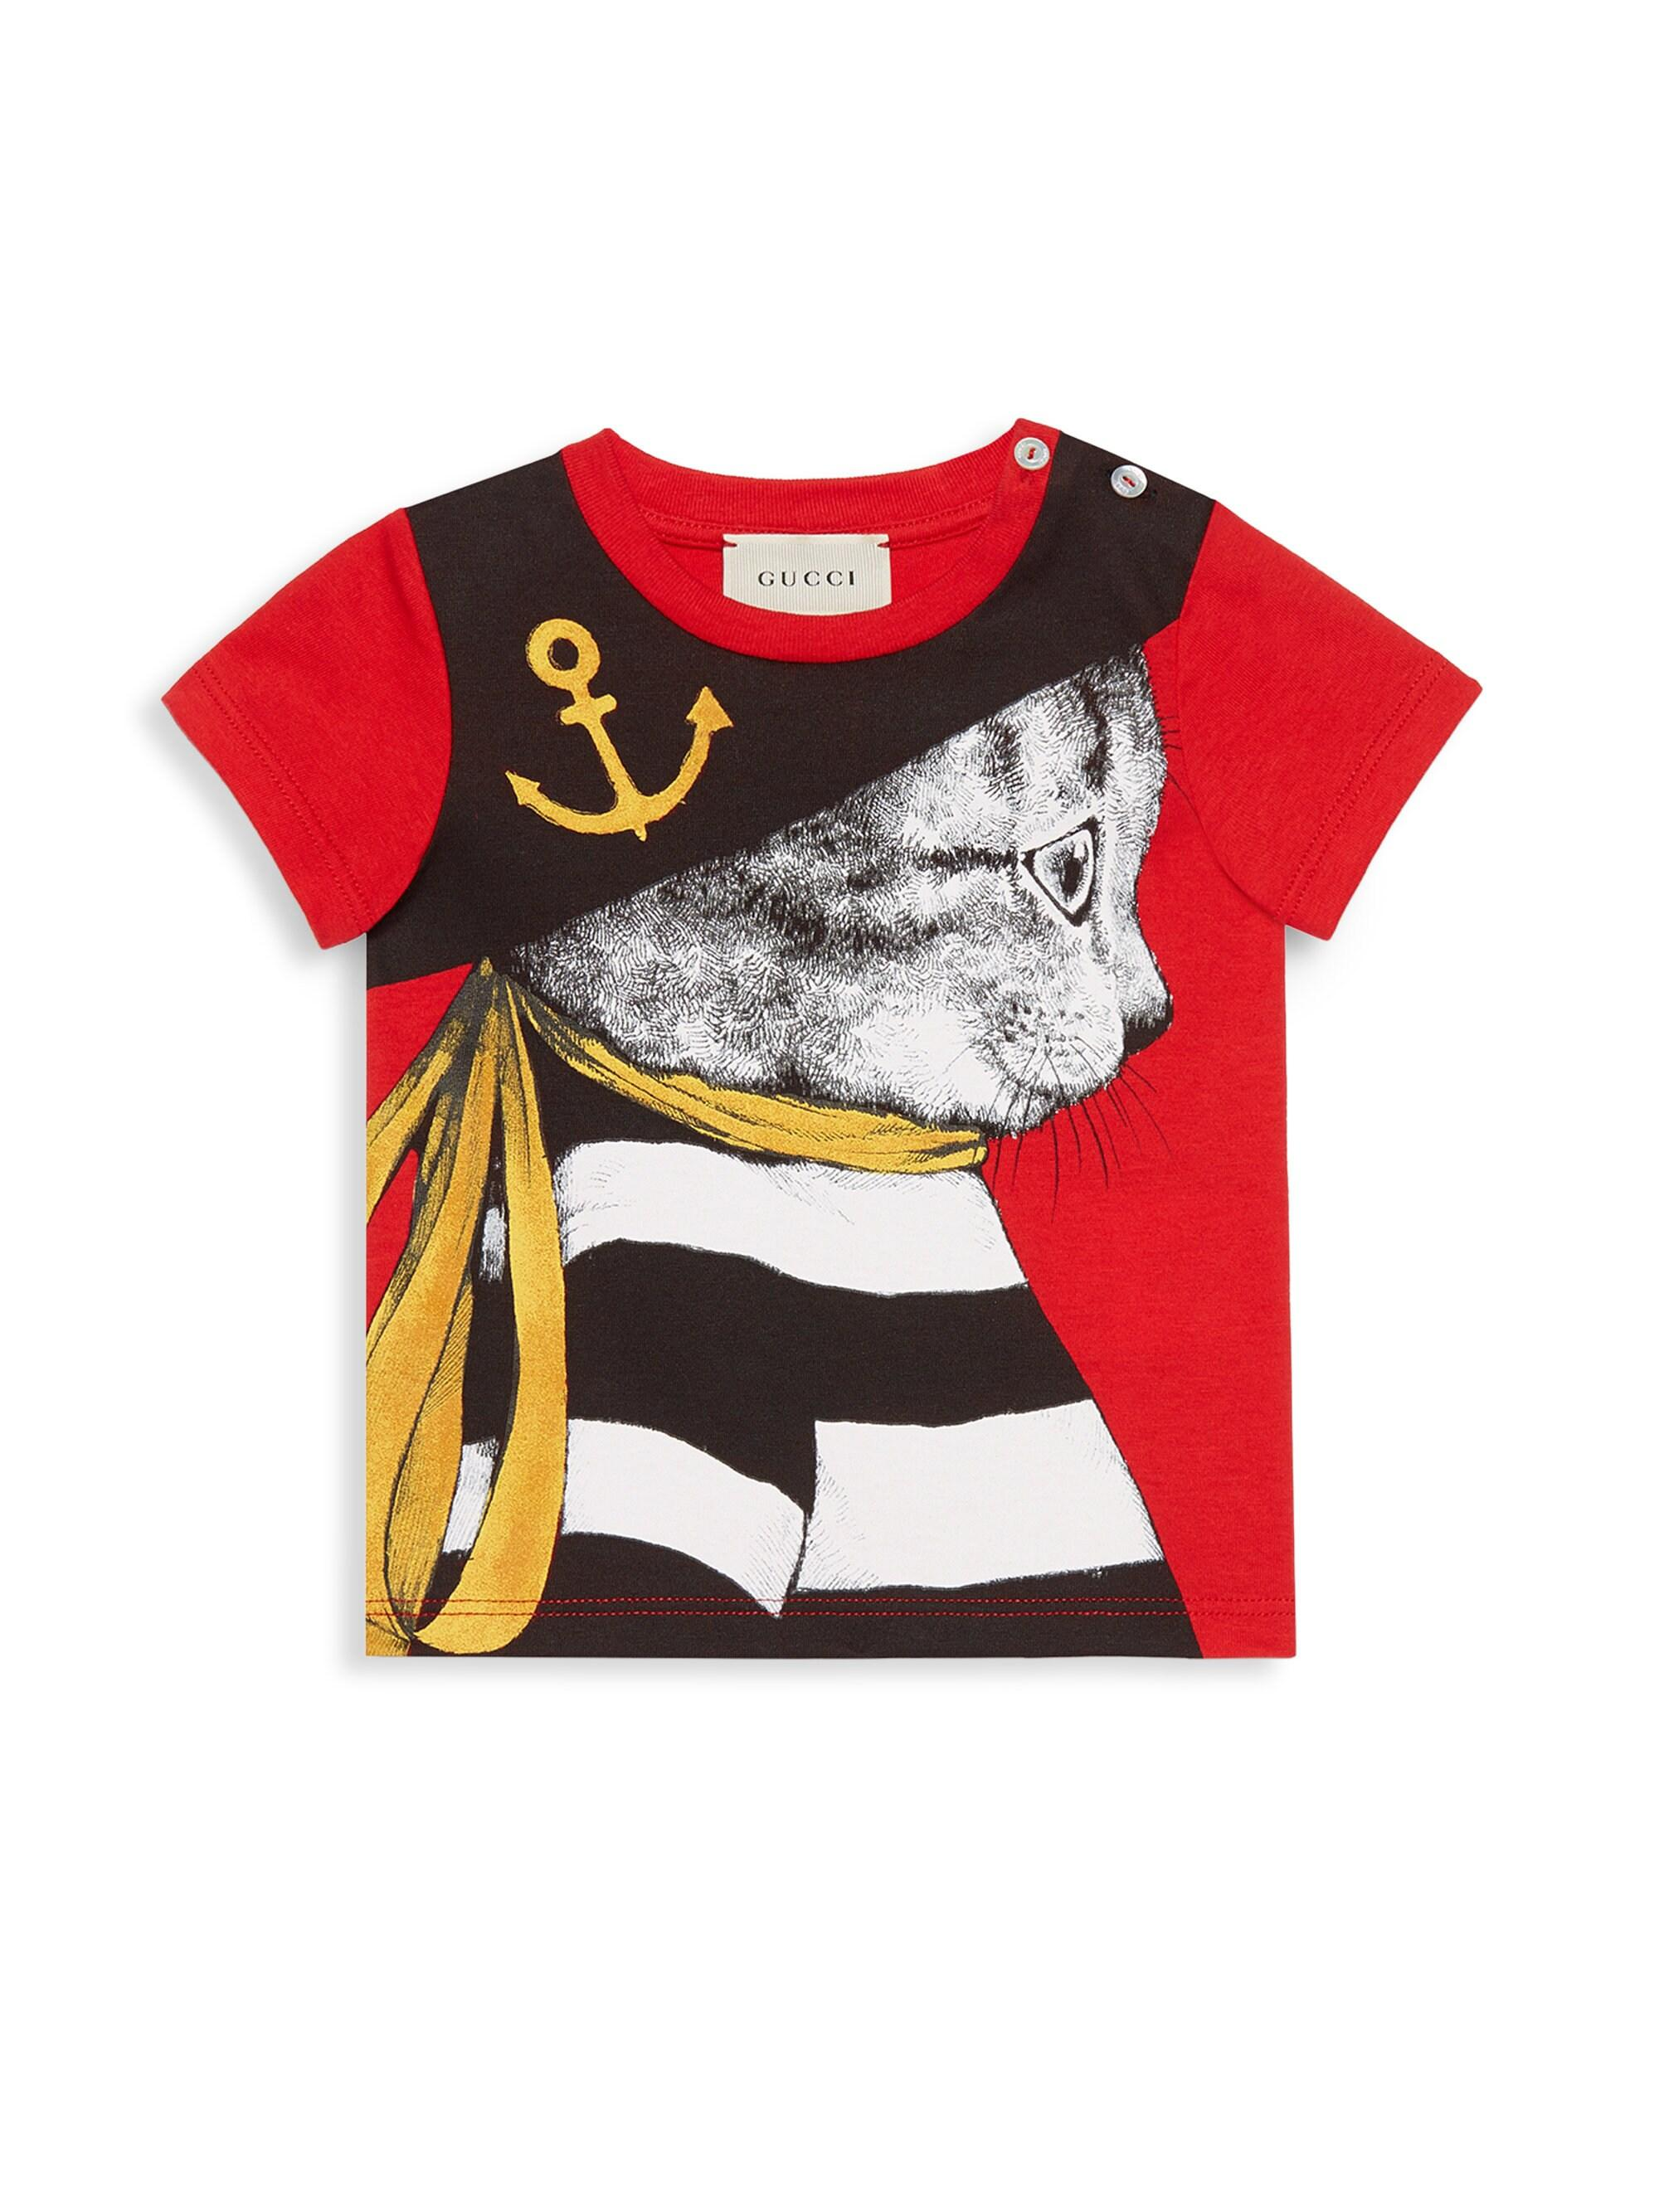 175ba96b6d7d Lyst - Gucci Baby Boy s Pirate Feline Tee - Cherry Red in Red for Men